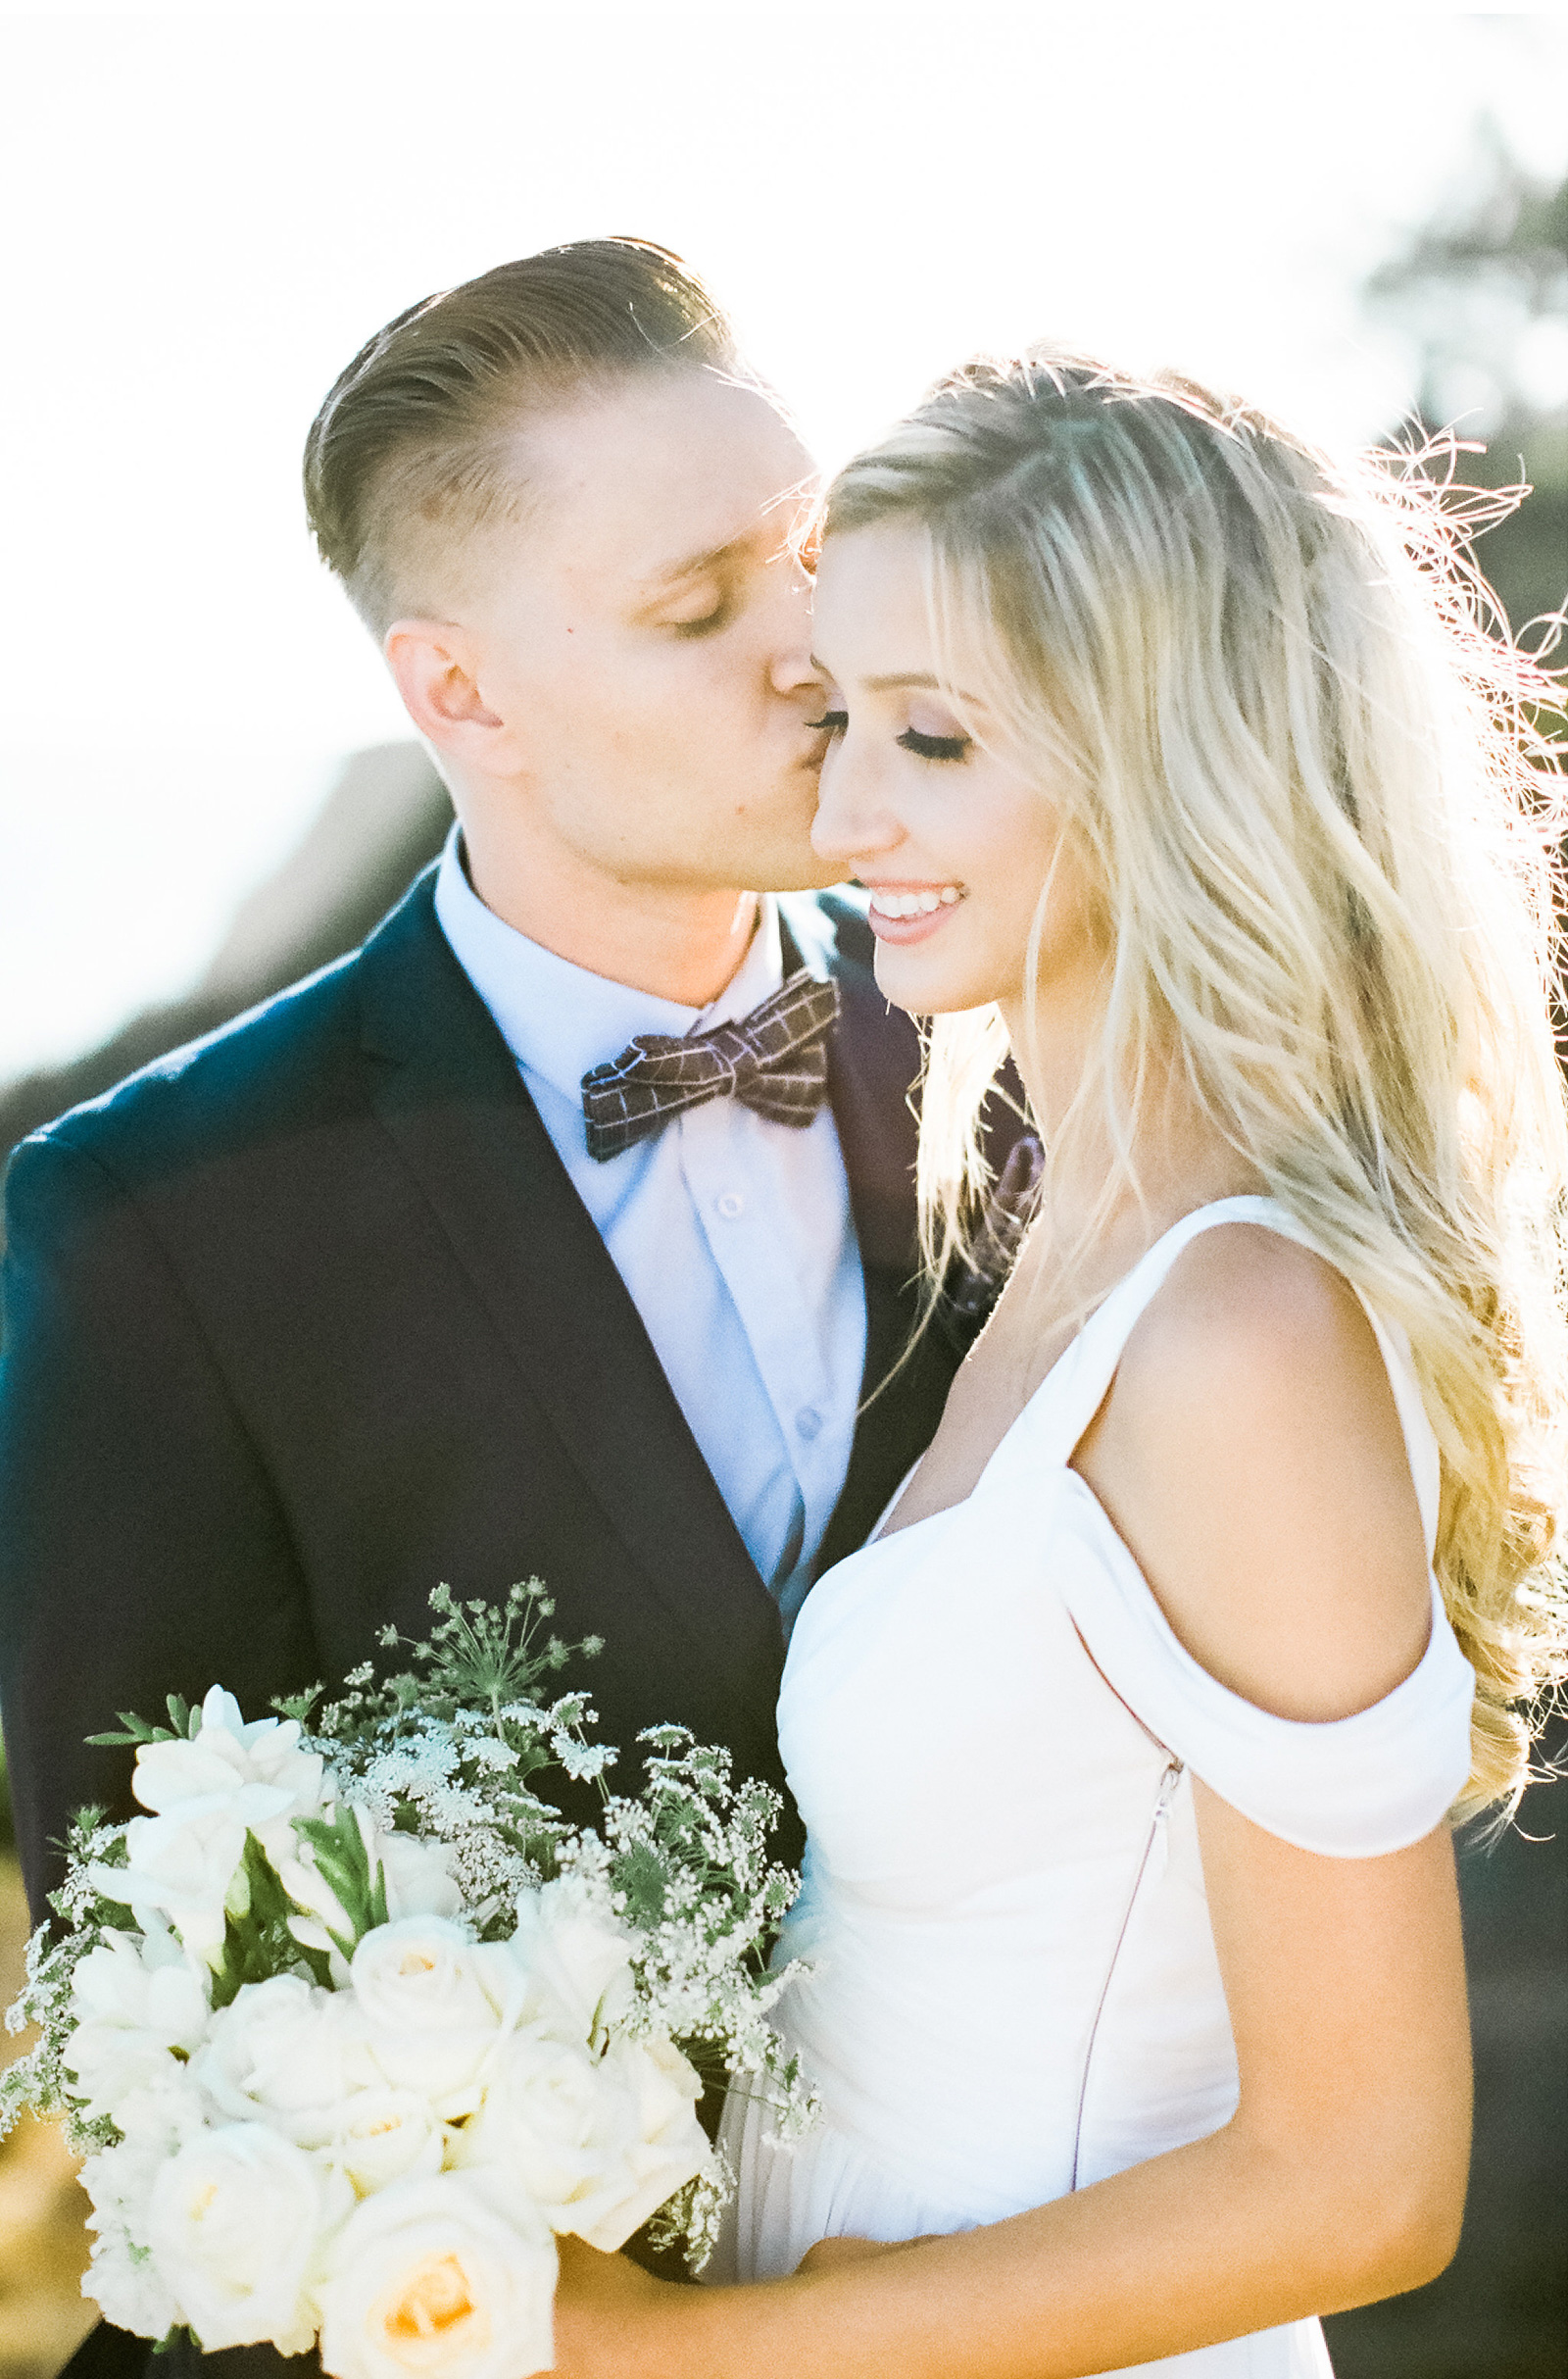 Style-Me-Pretty-Malibu-Wedding-Natalie-Schutt-Photography_05.jpg